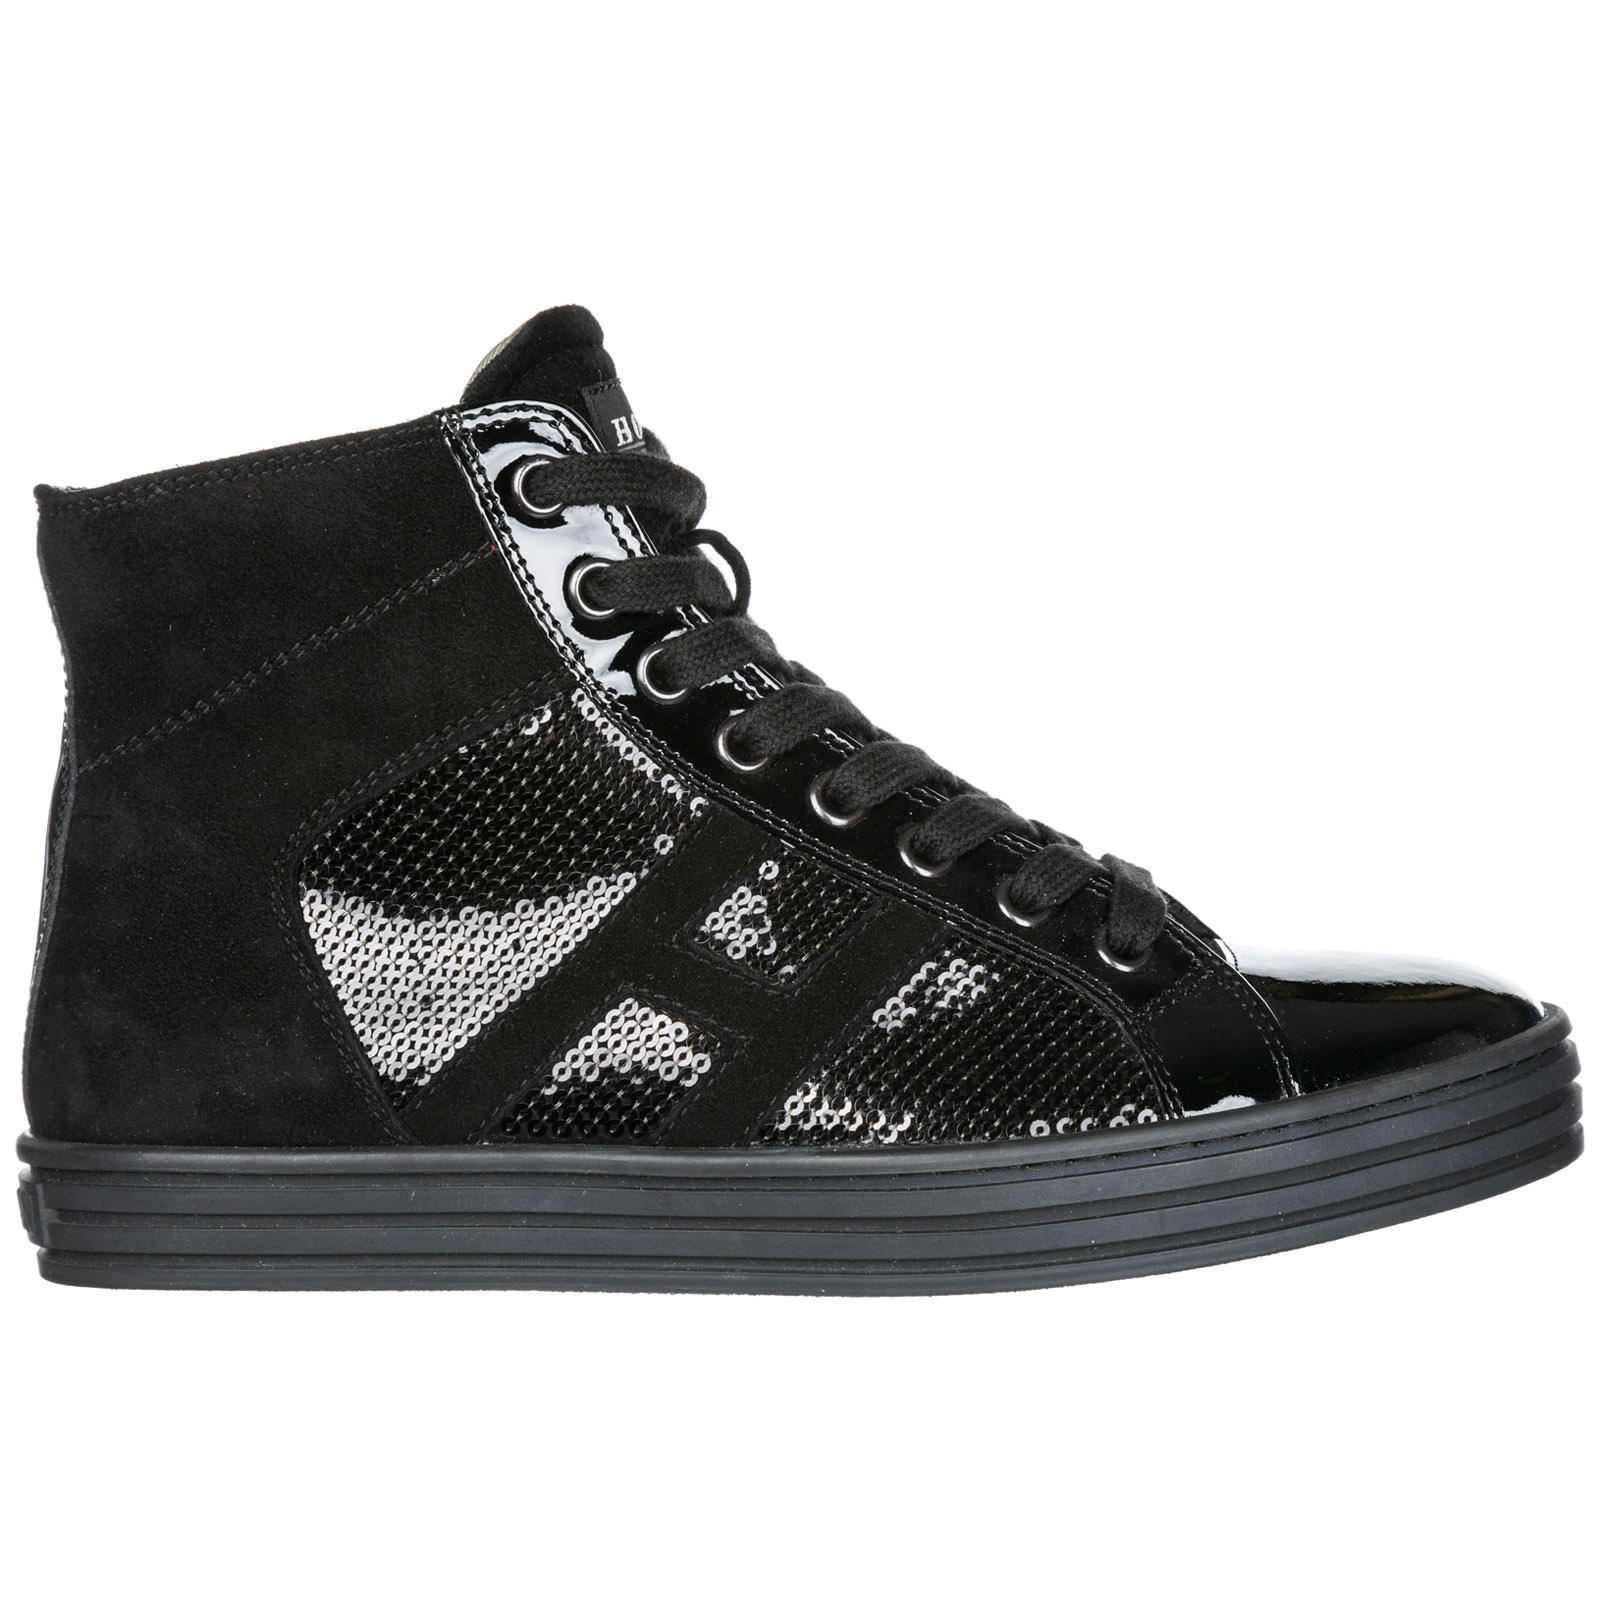 Hogan Rebel Women's Shoes High Top Suede Trainers Sneakers R141 In ...